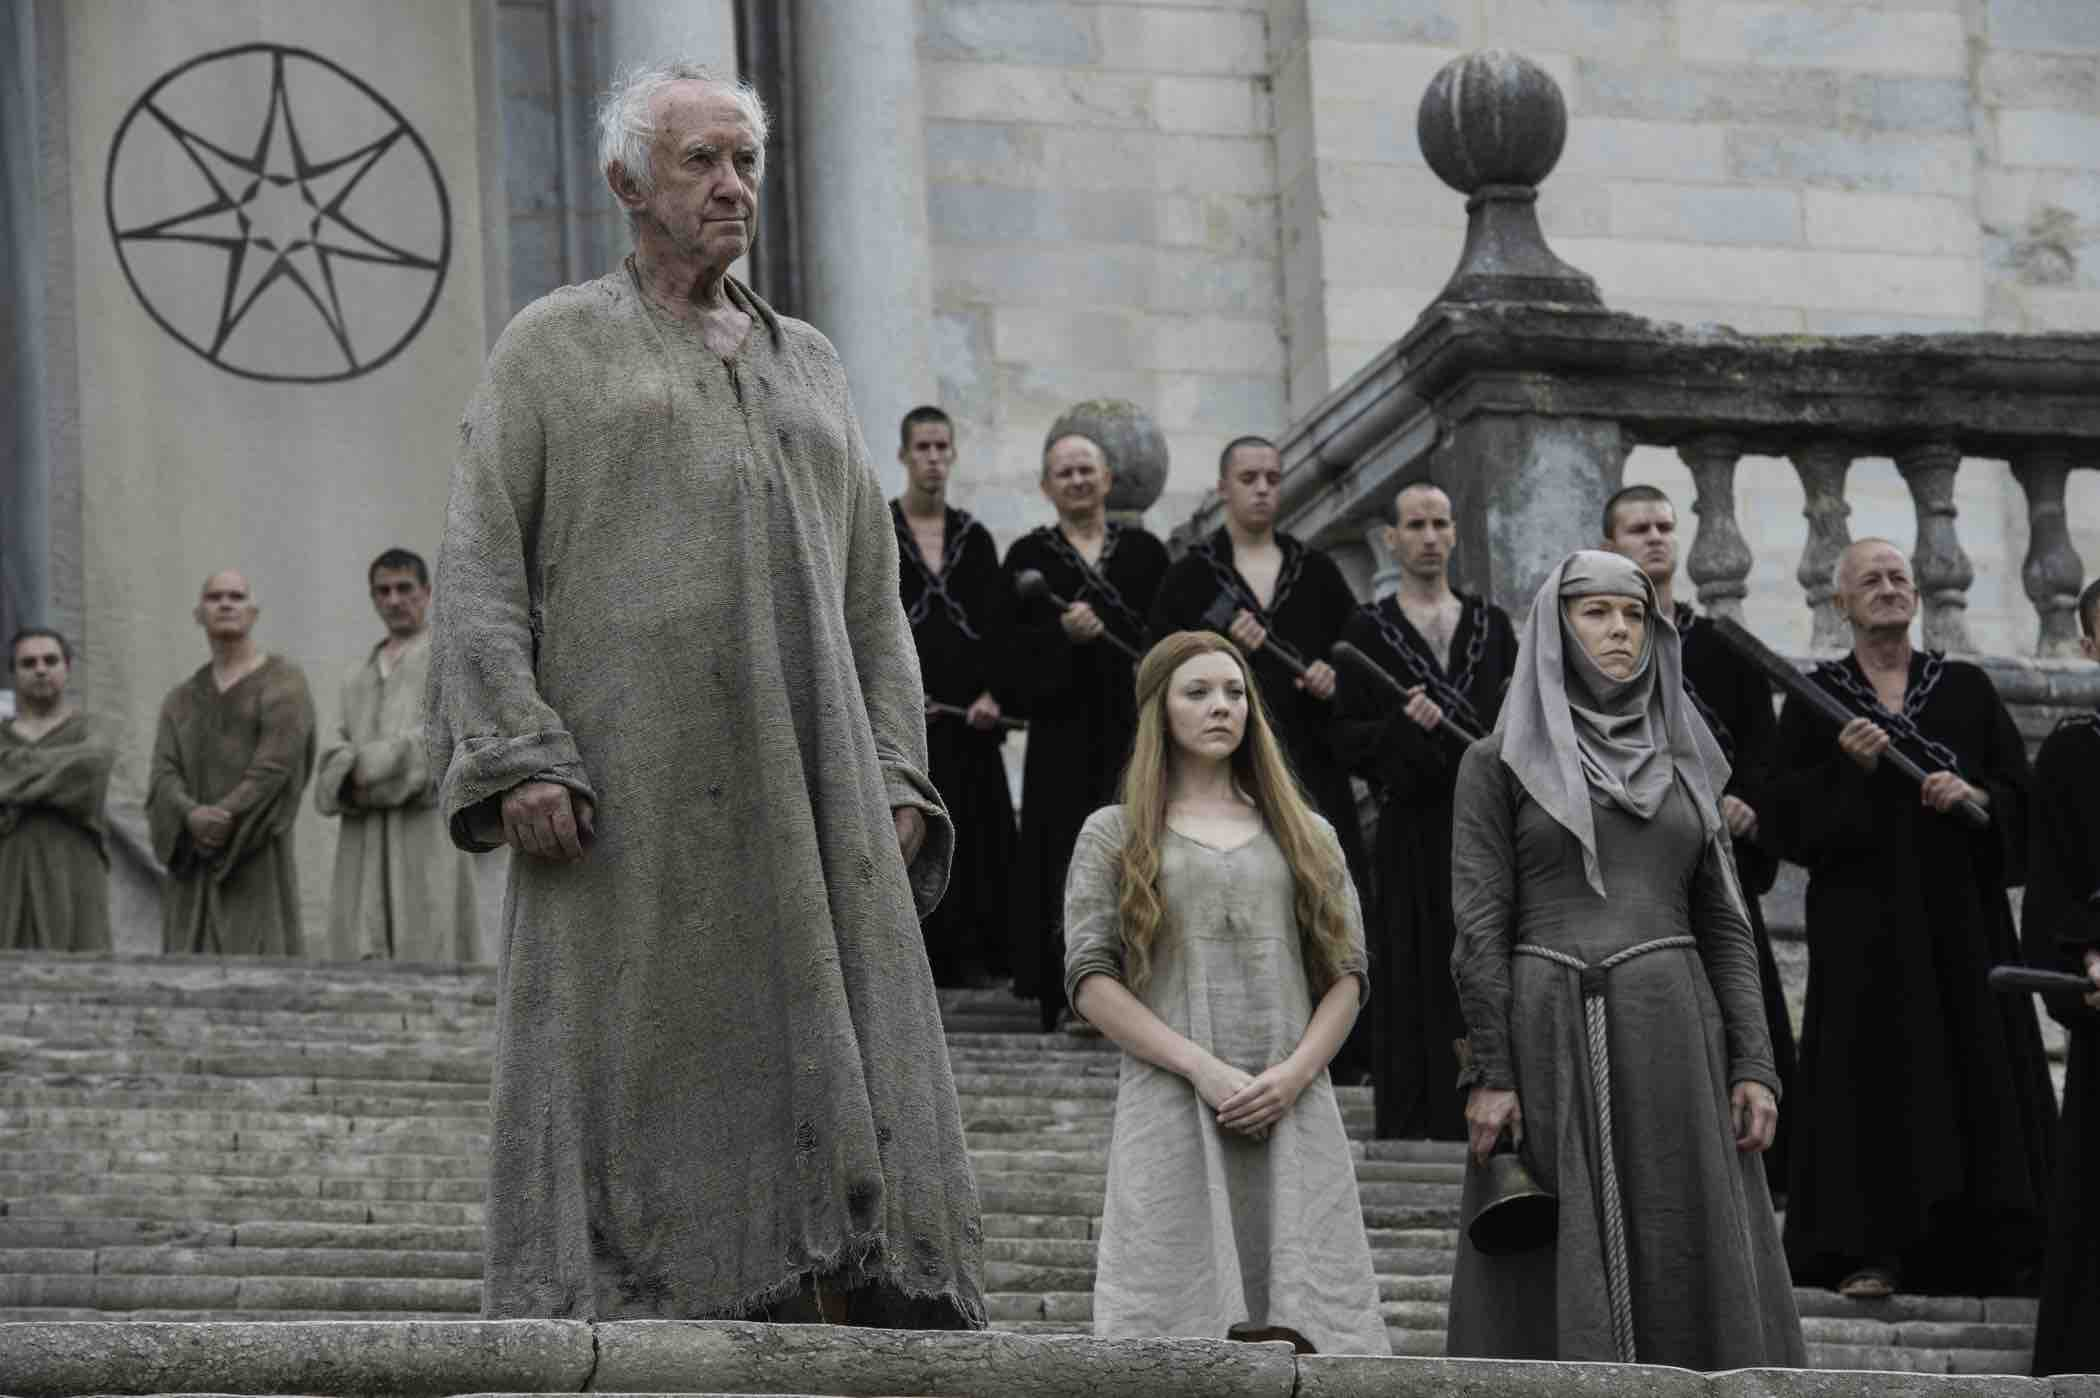 It seems Margaery's trial is imminent, as the High Sparrow brings her out of her cell and in front of the Sept of Baelor.